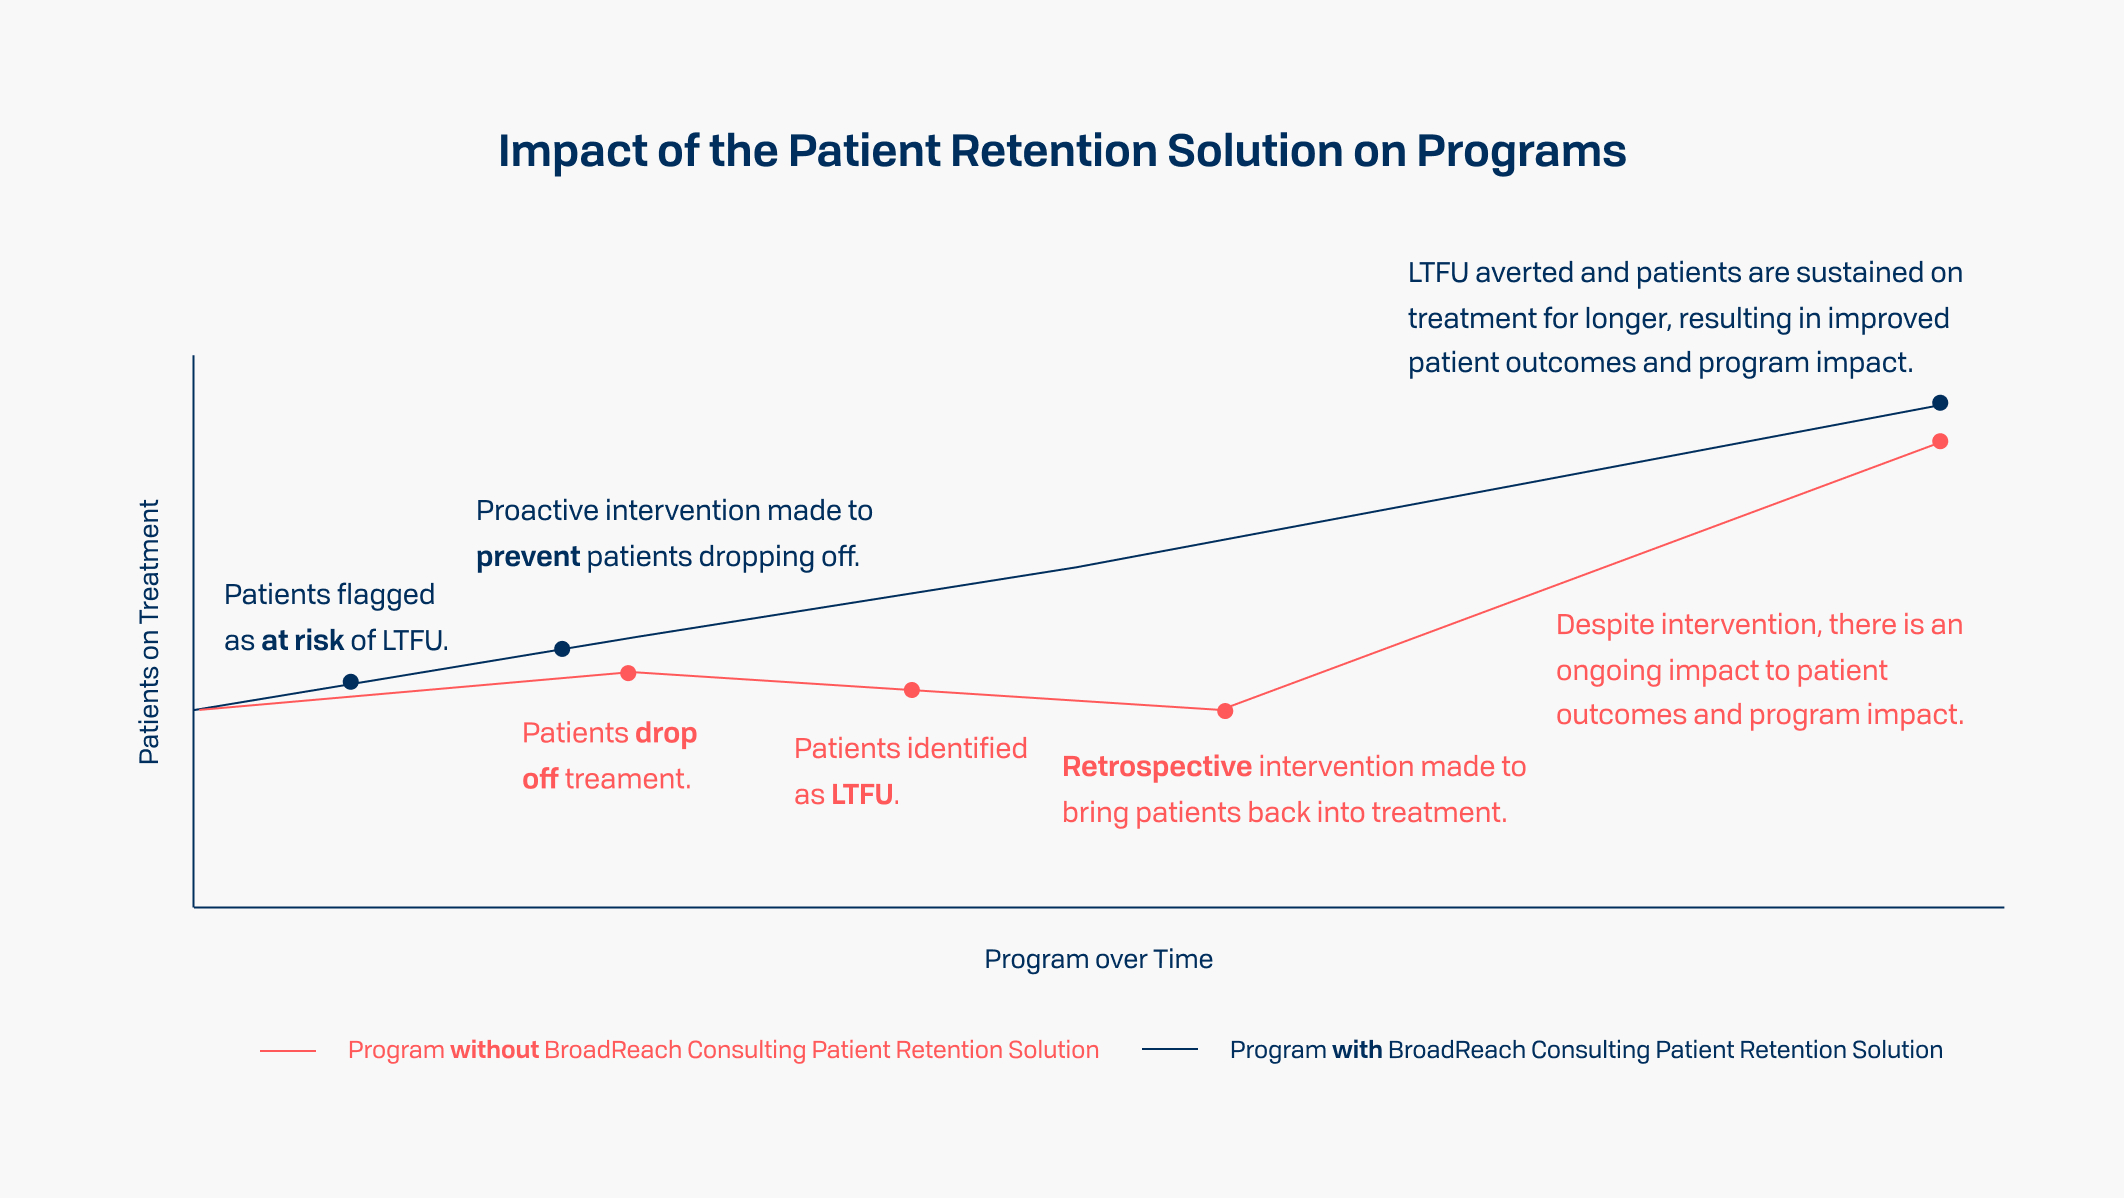 Impact of the Patient Retention Solution on Programs - Despite intervention